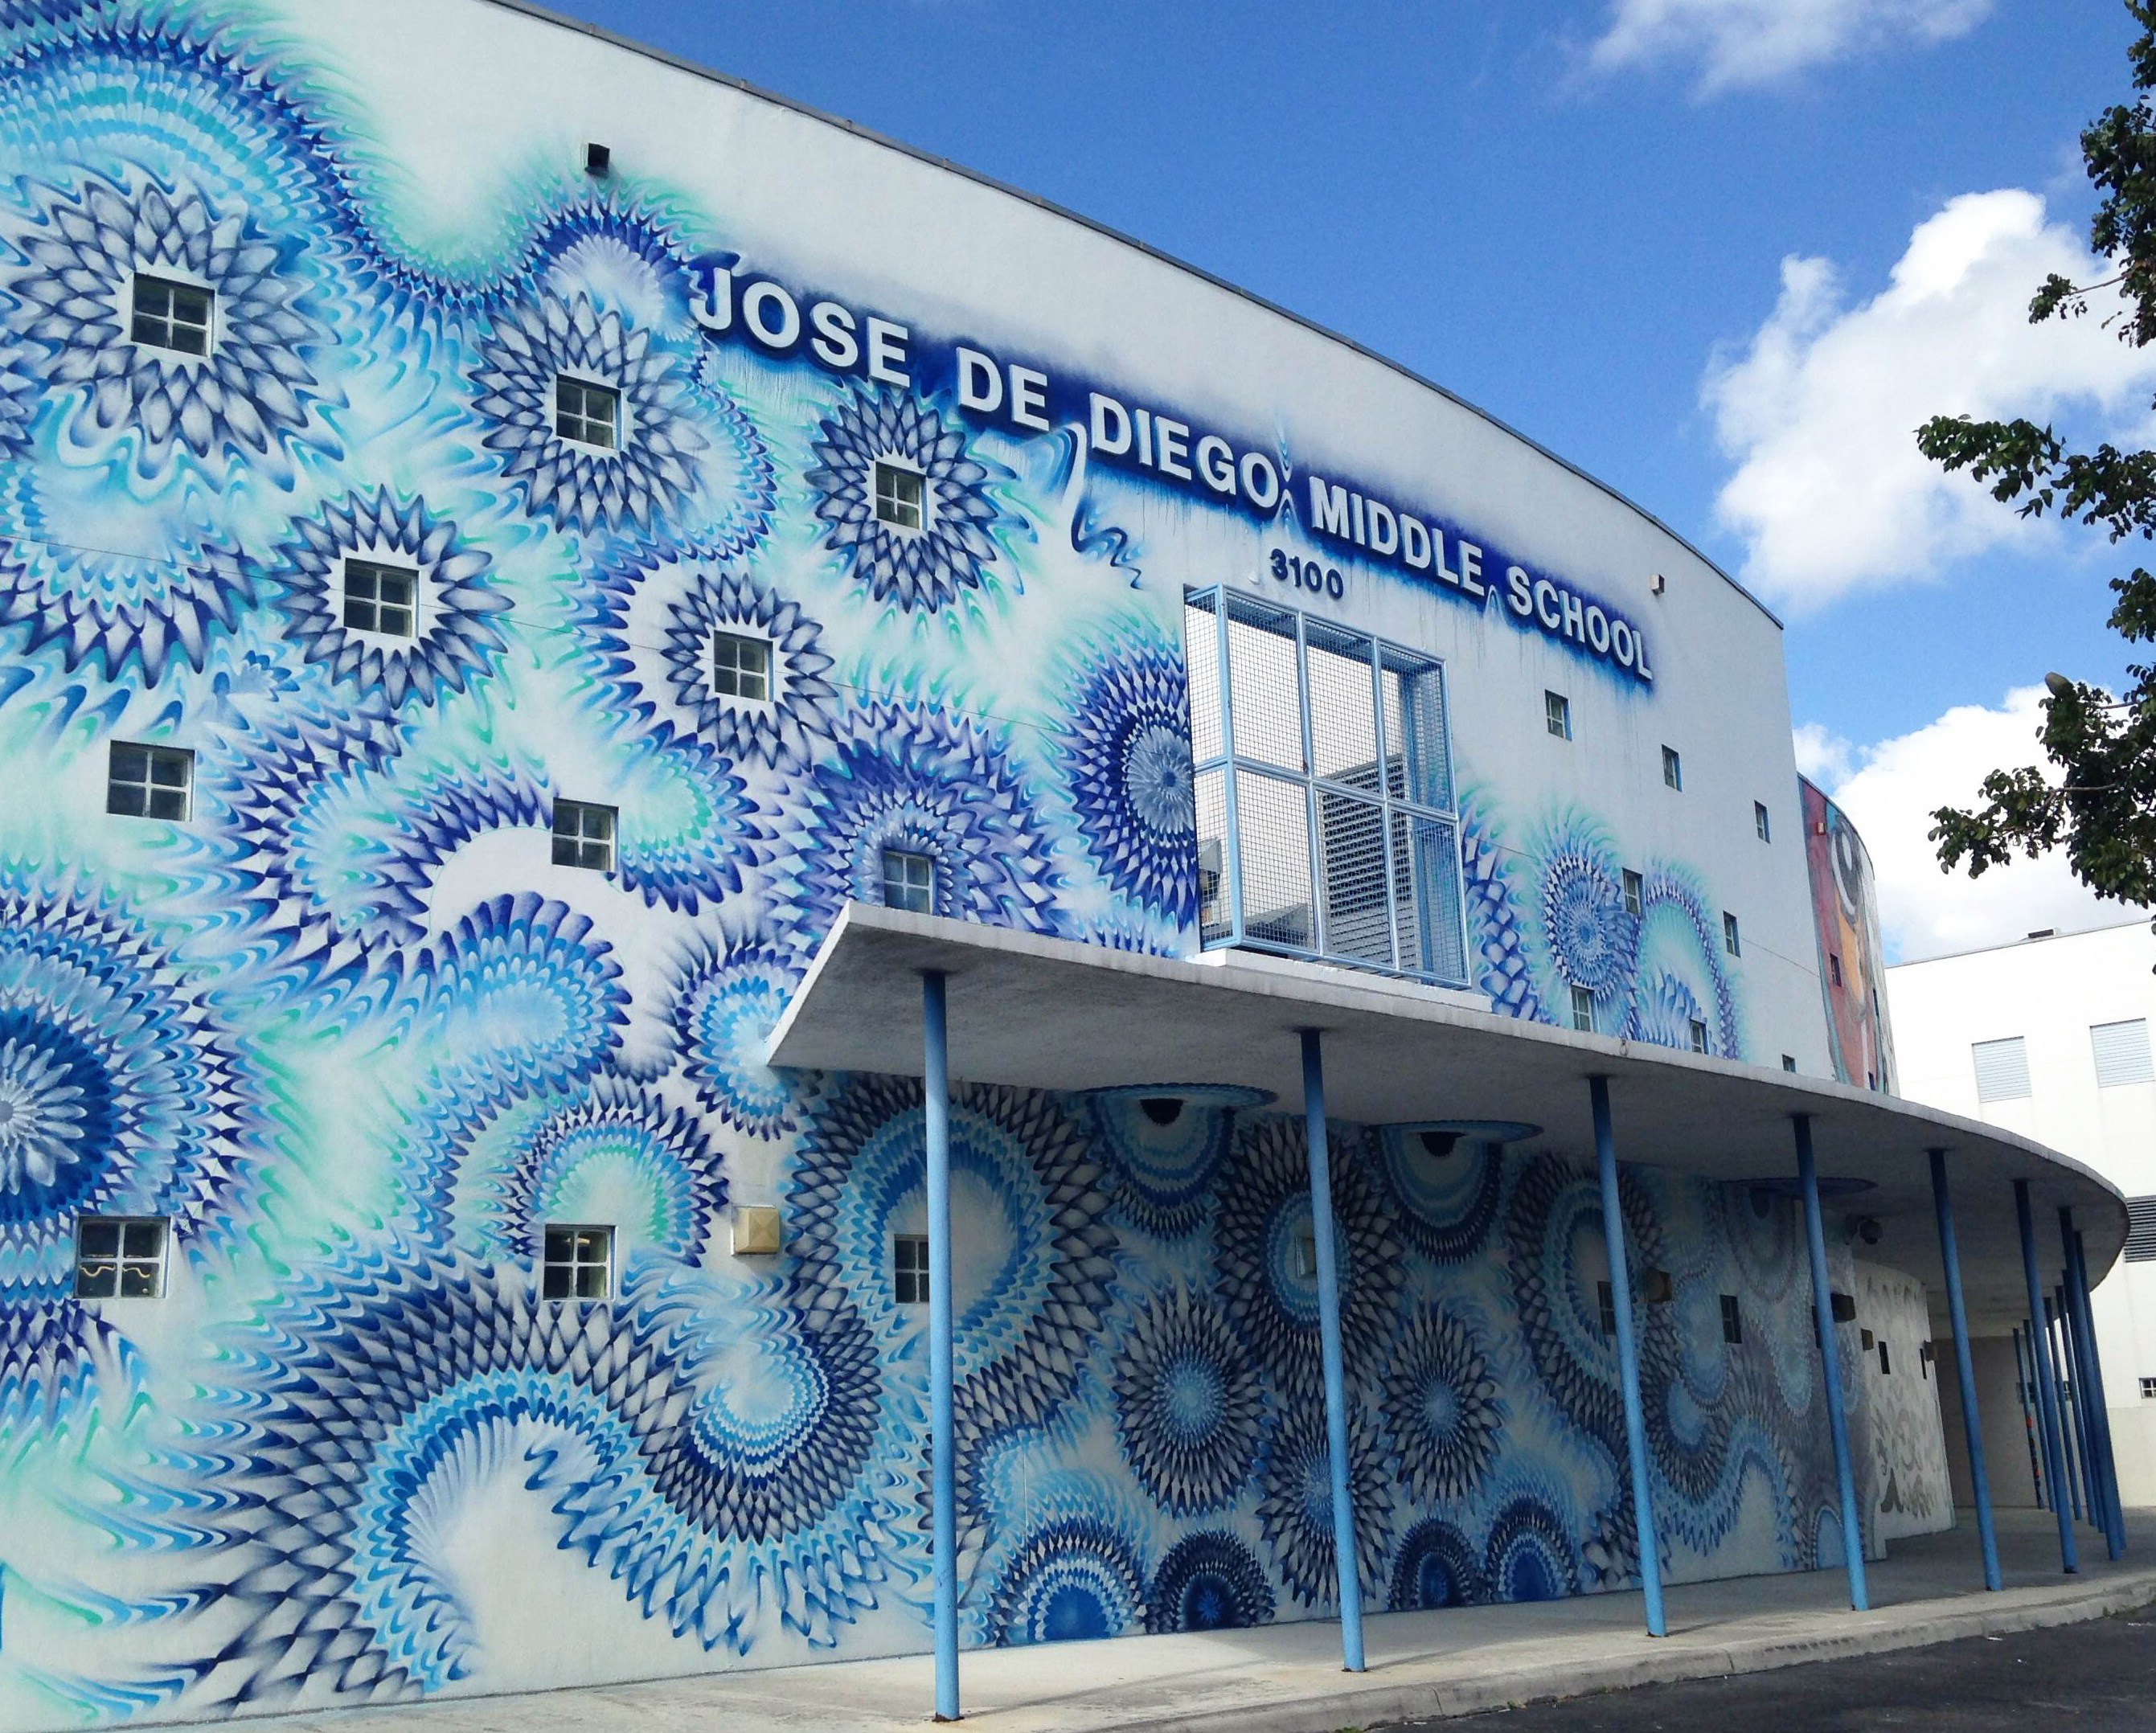 Jose de Diego Middle School.jpg